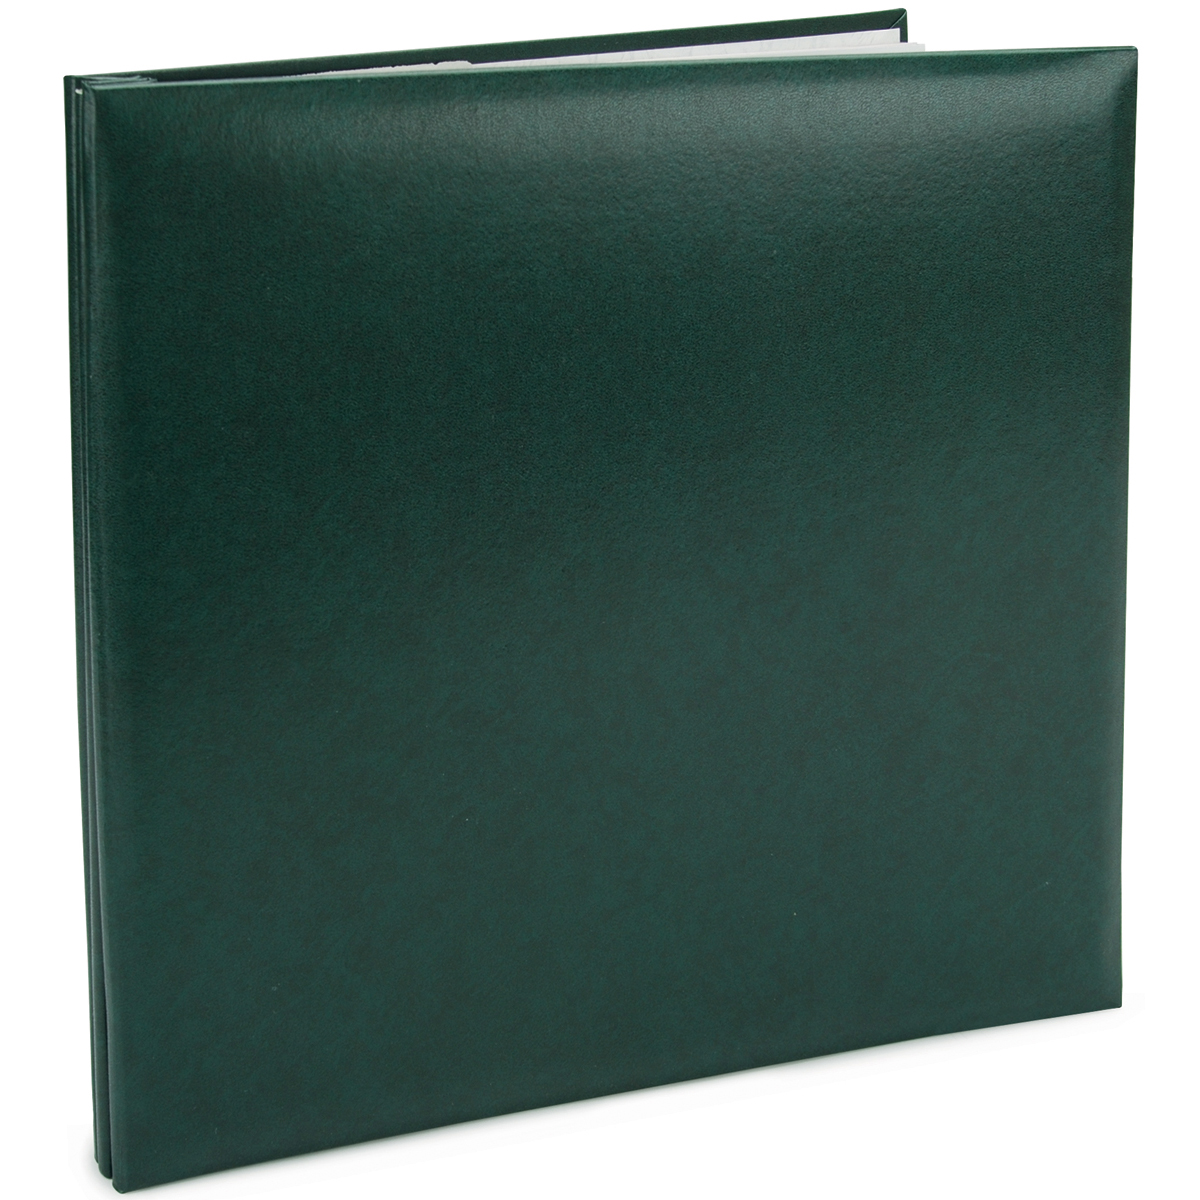 PIONEER LEATHERETTE ALBUM 12X12 Hunter Green